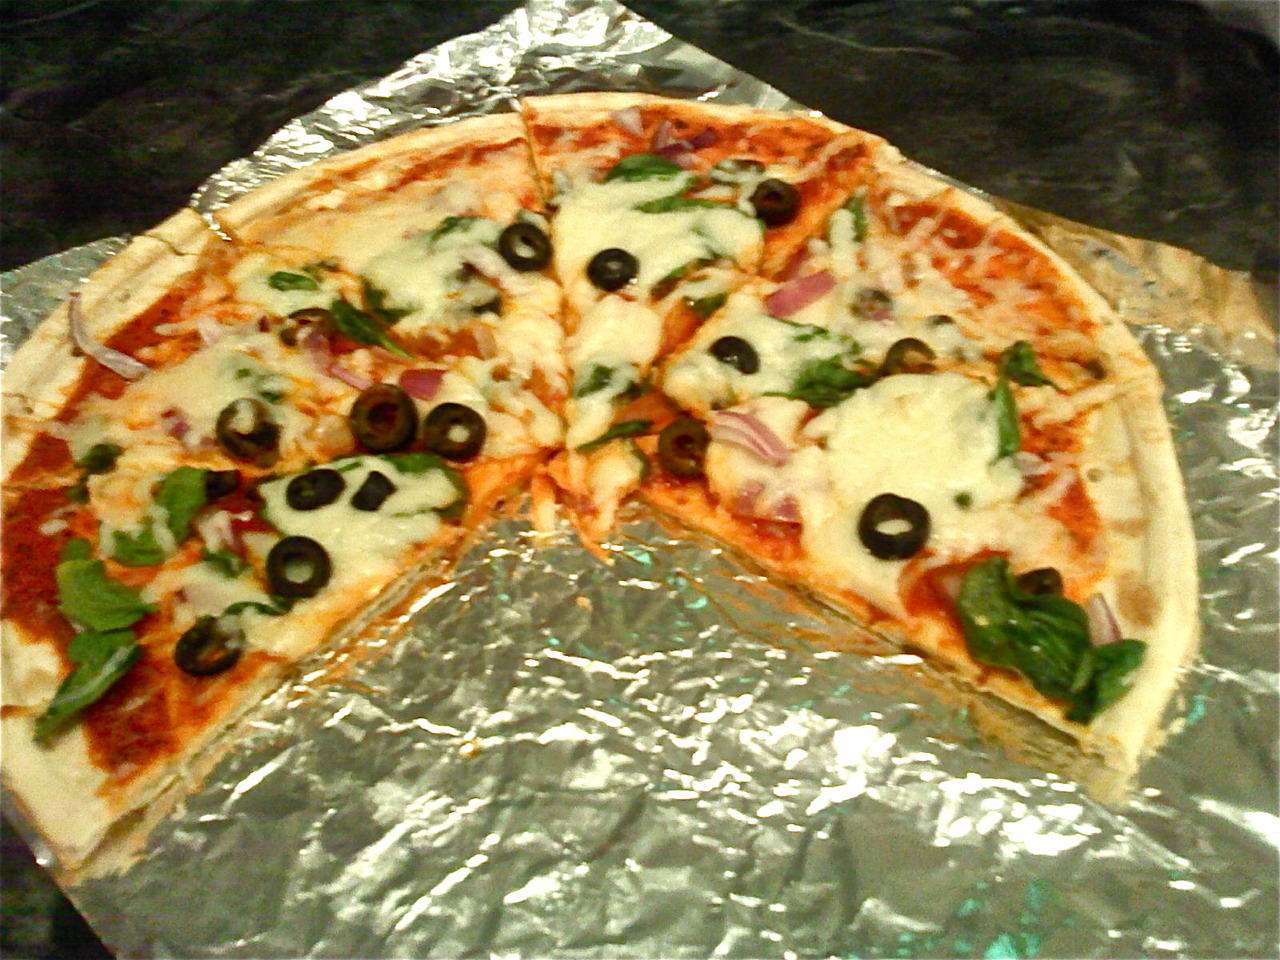 homemade vegan pizza. nomnomomnonmnomnom.